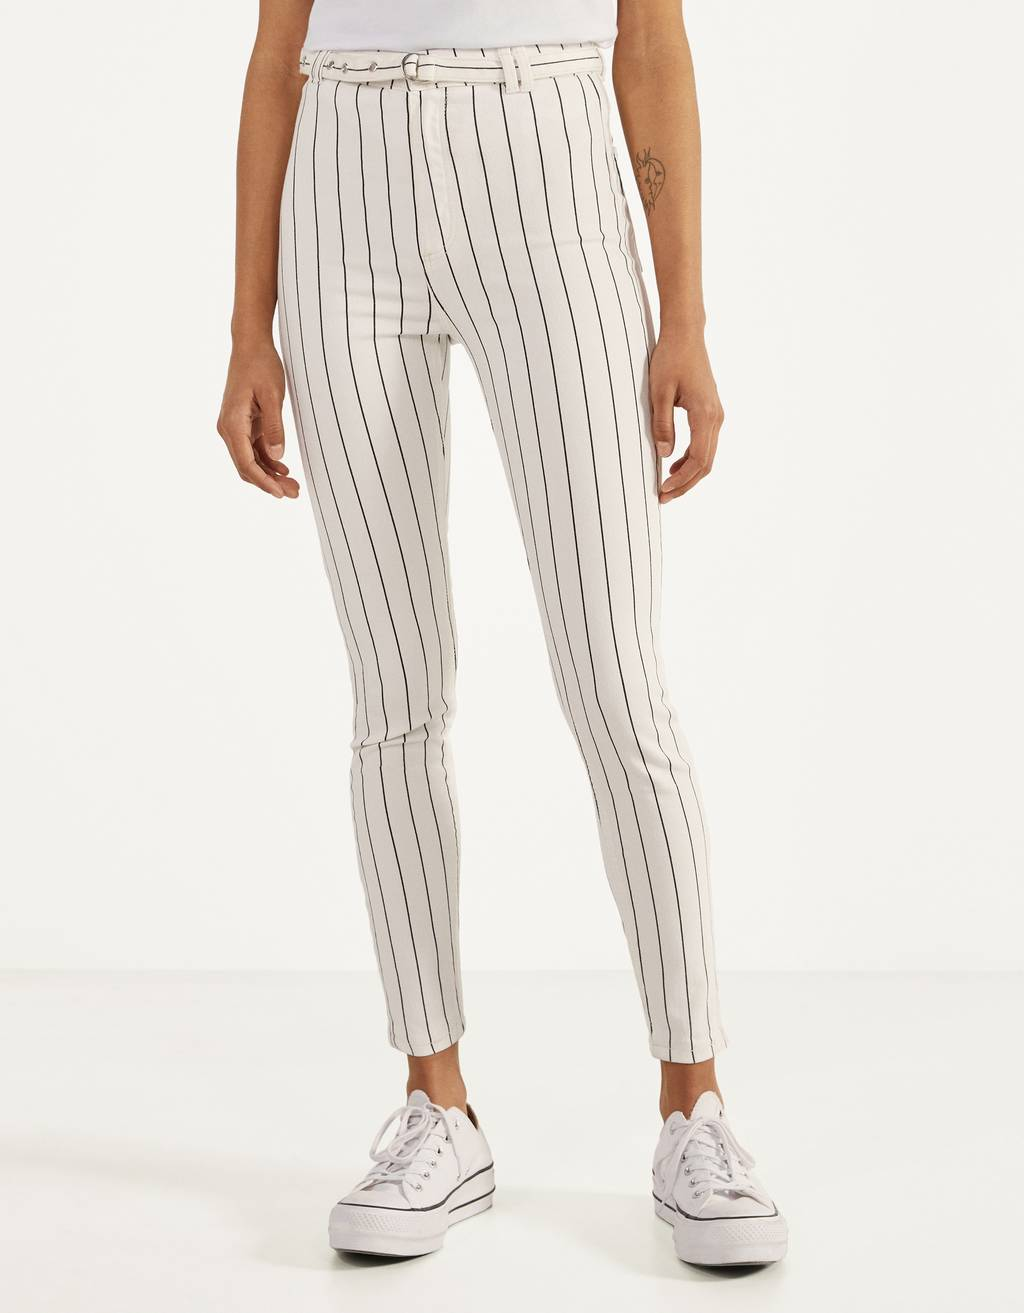 Belted high-rise pants